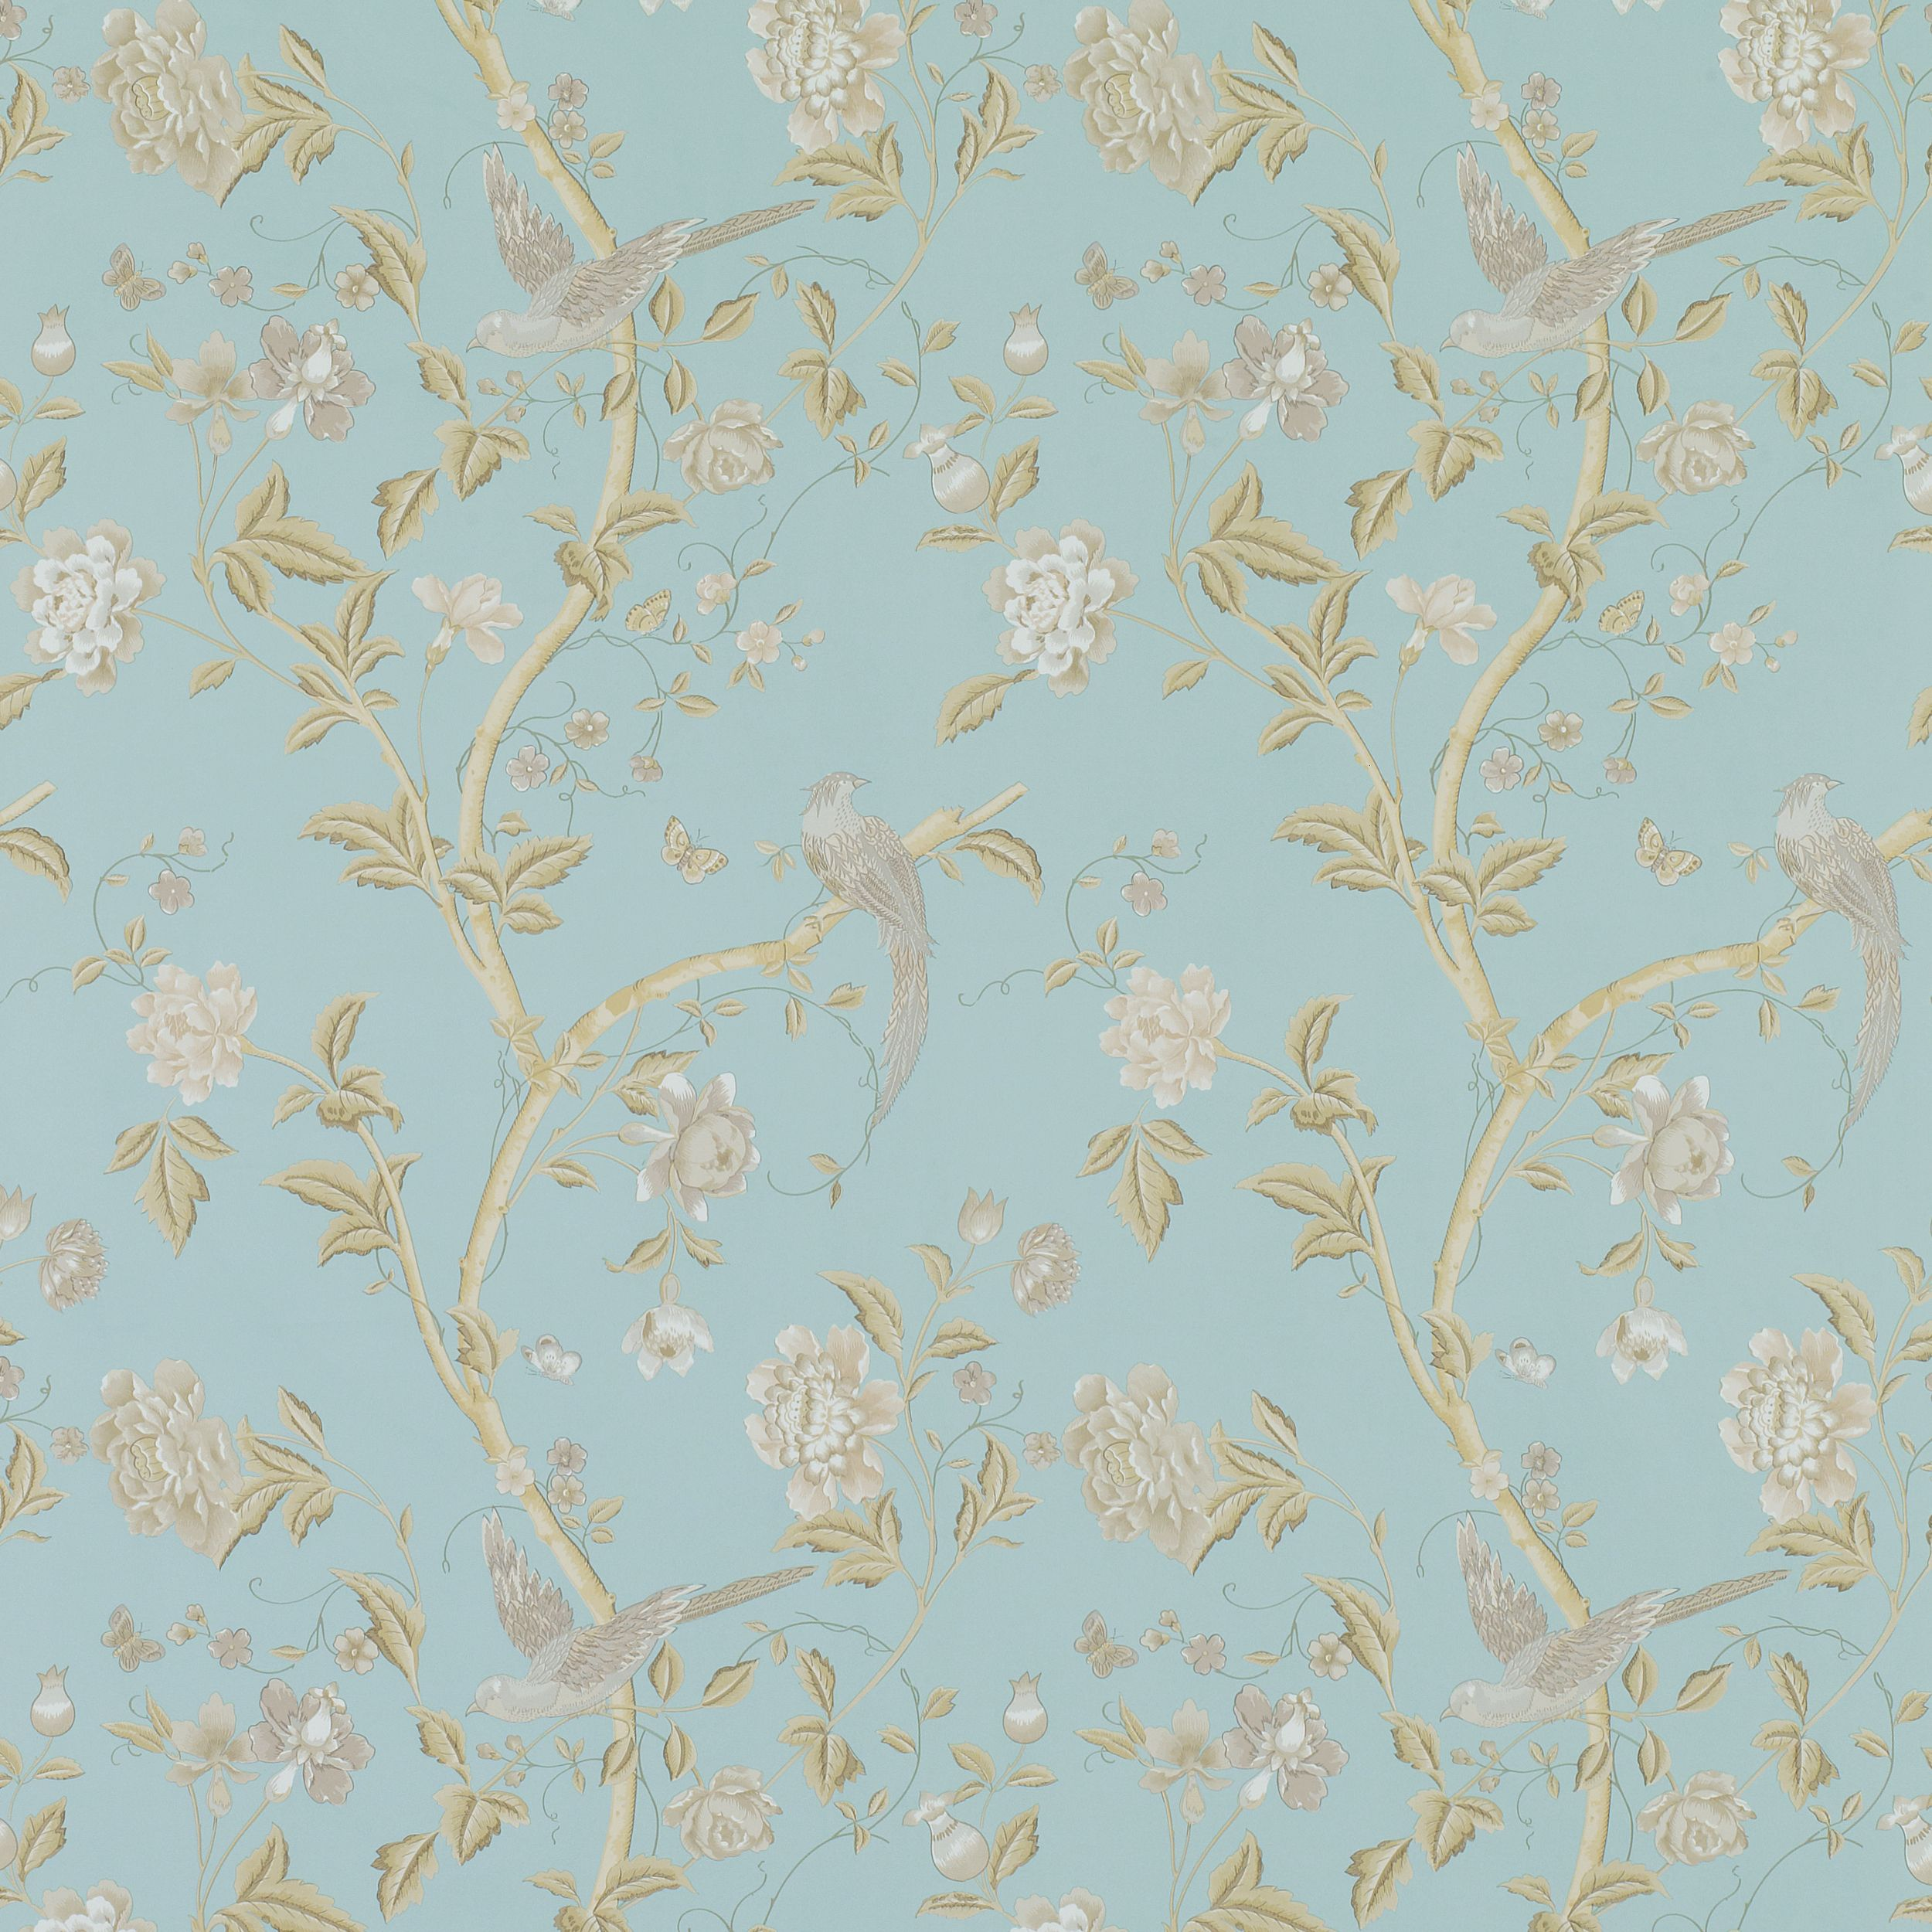 Love this wall paper for a girls room :) | home : ) | Pinterest ...